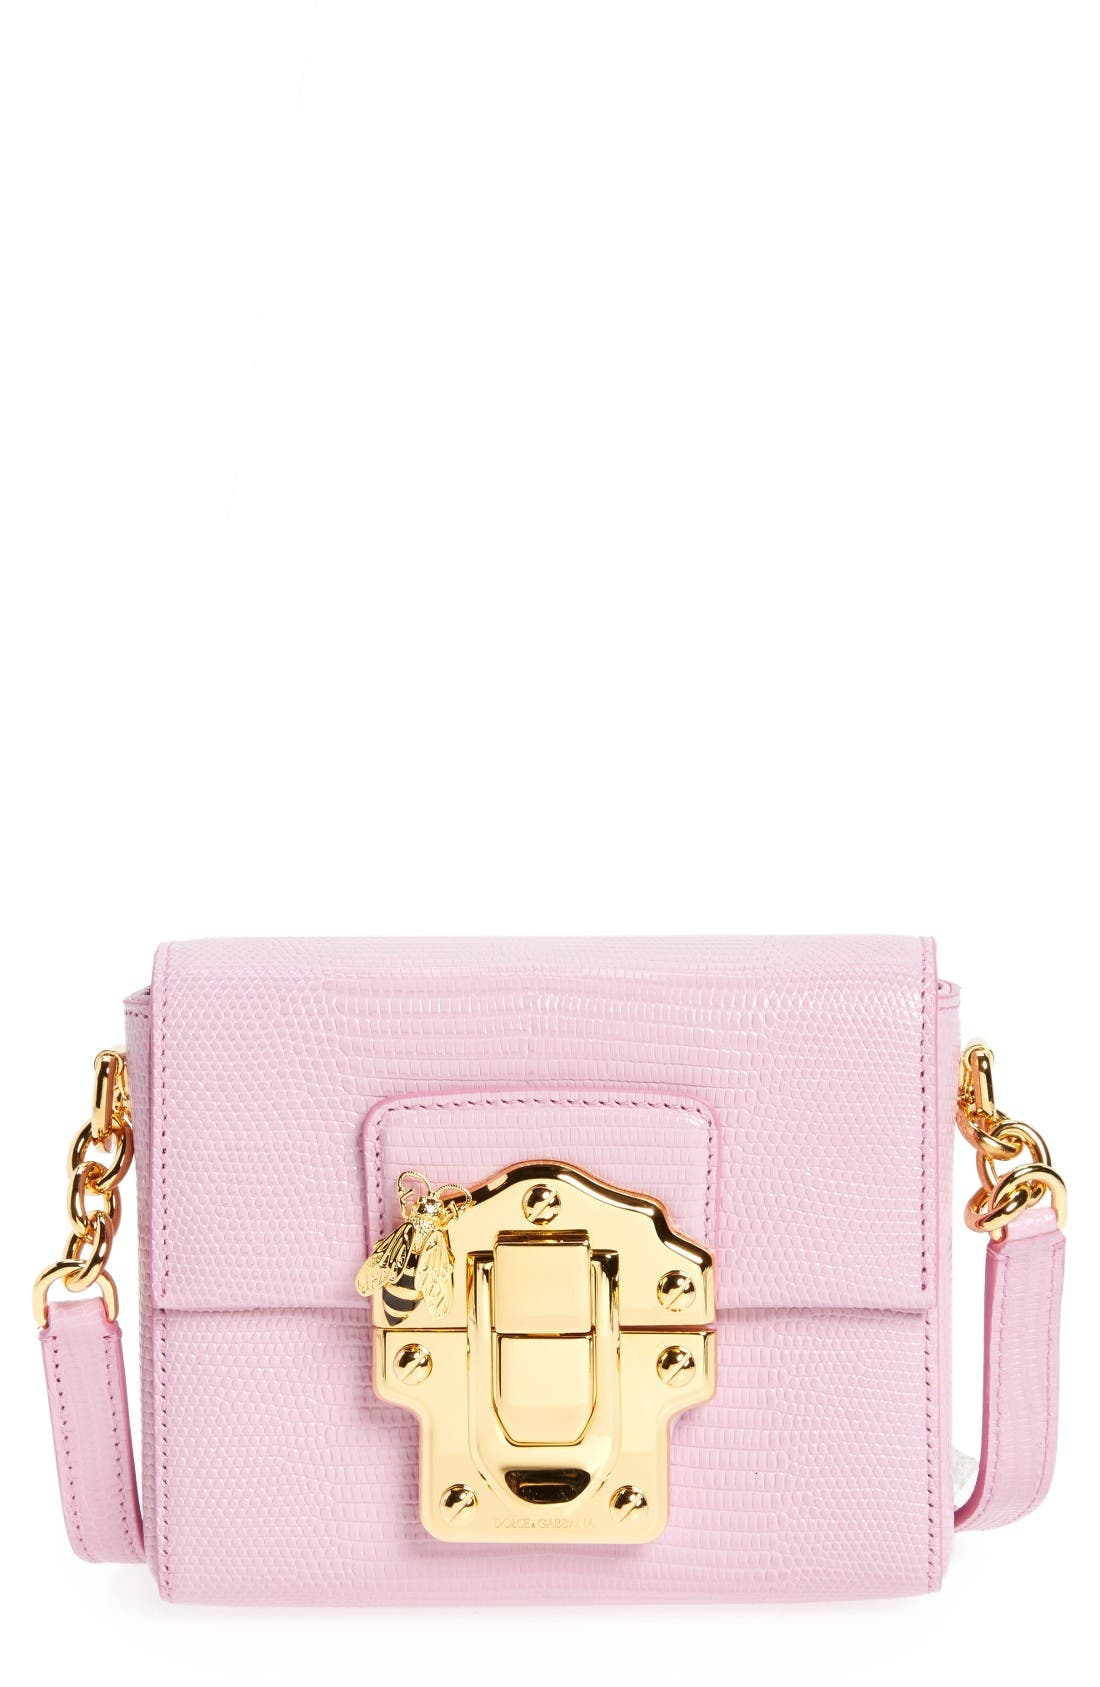 Alternate Image 1 Selected - Dolce&Gabbana Mini Luccia Crossbody Bag